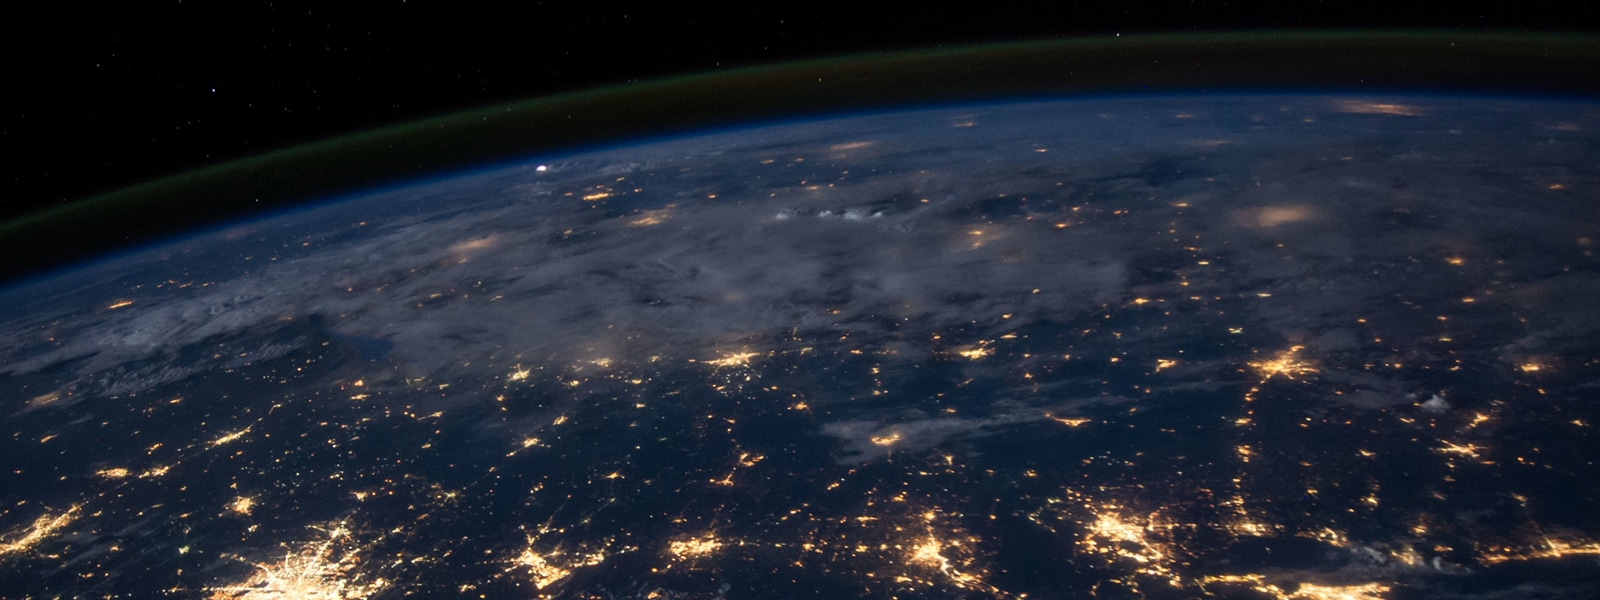 View of the Earth from space with city lights visible against dark sky